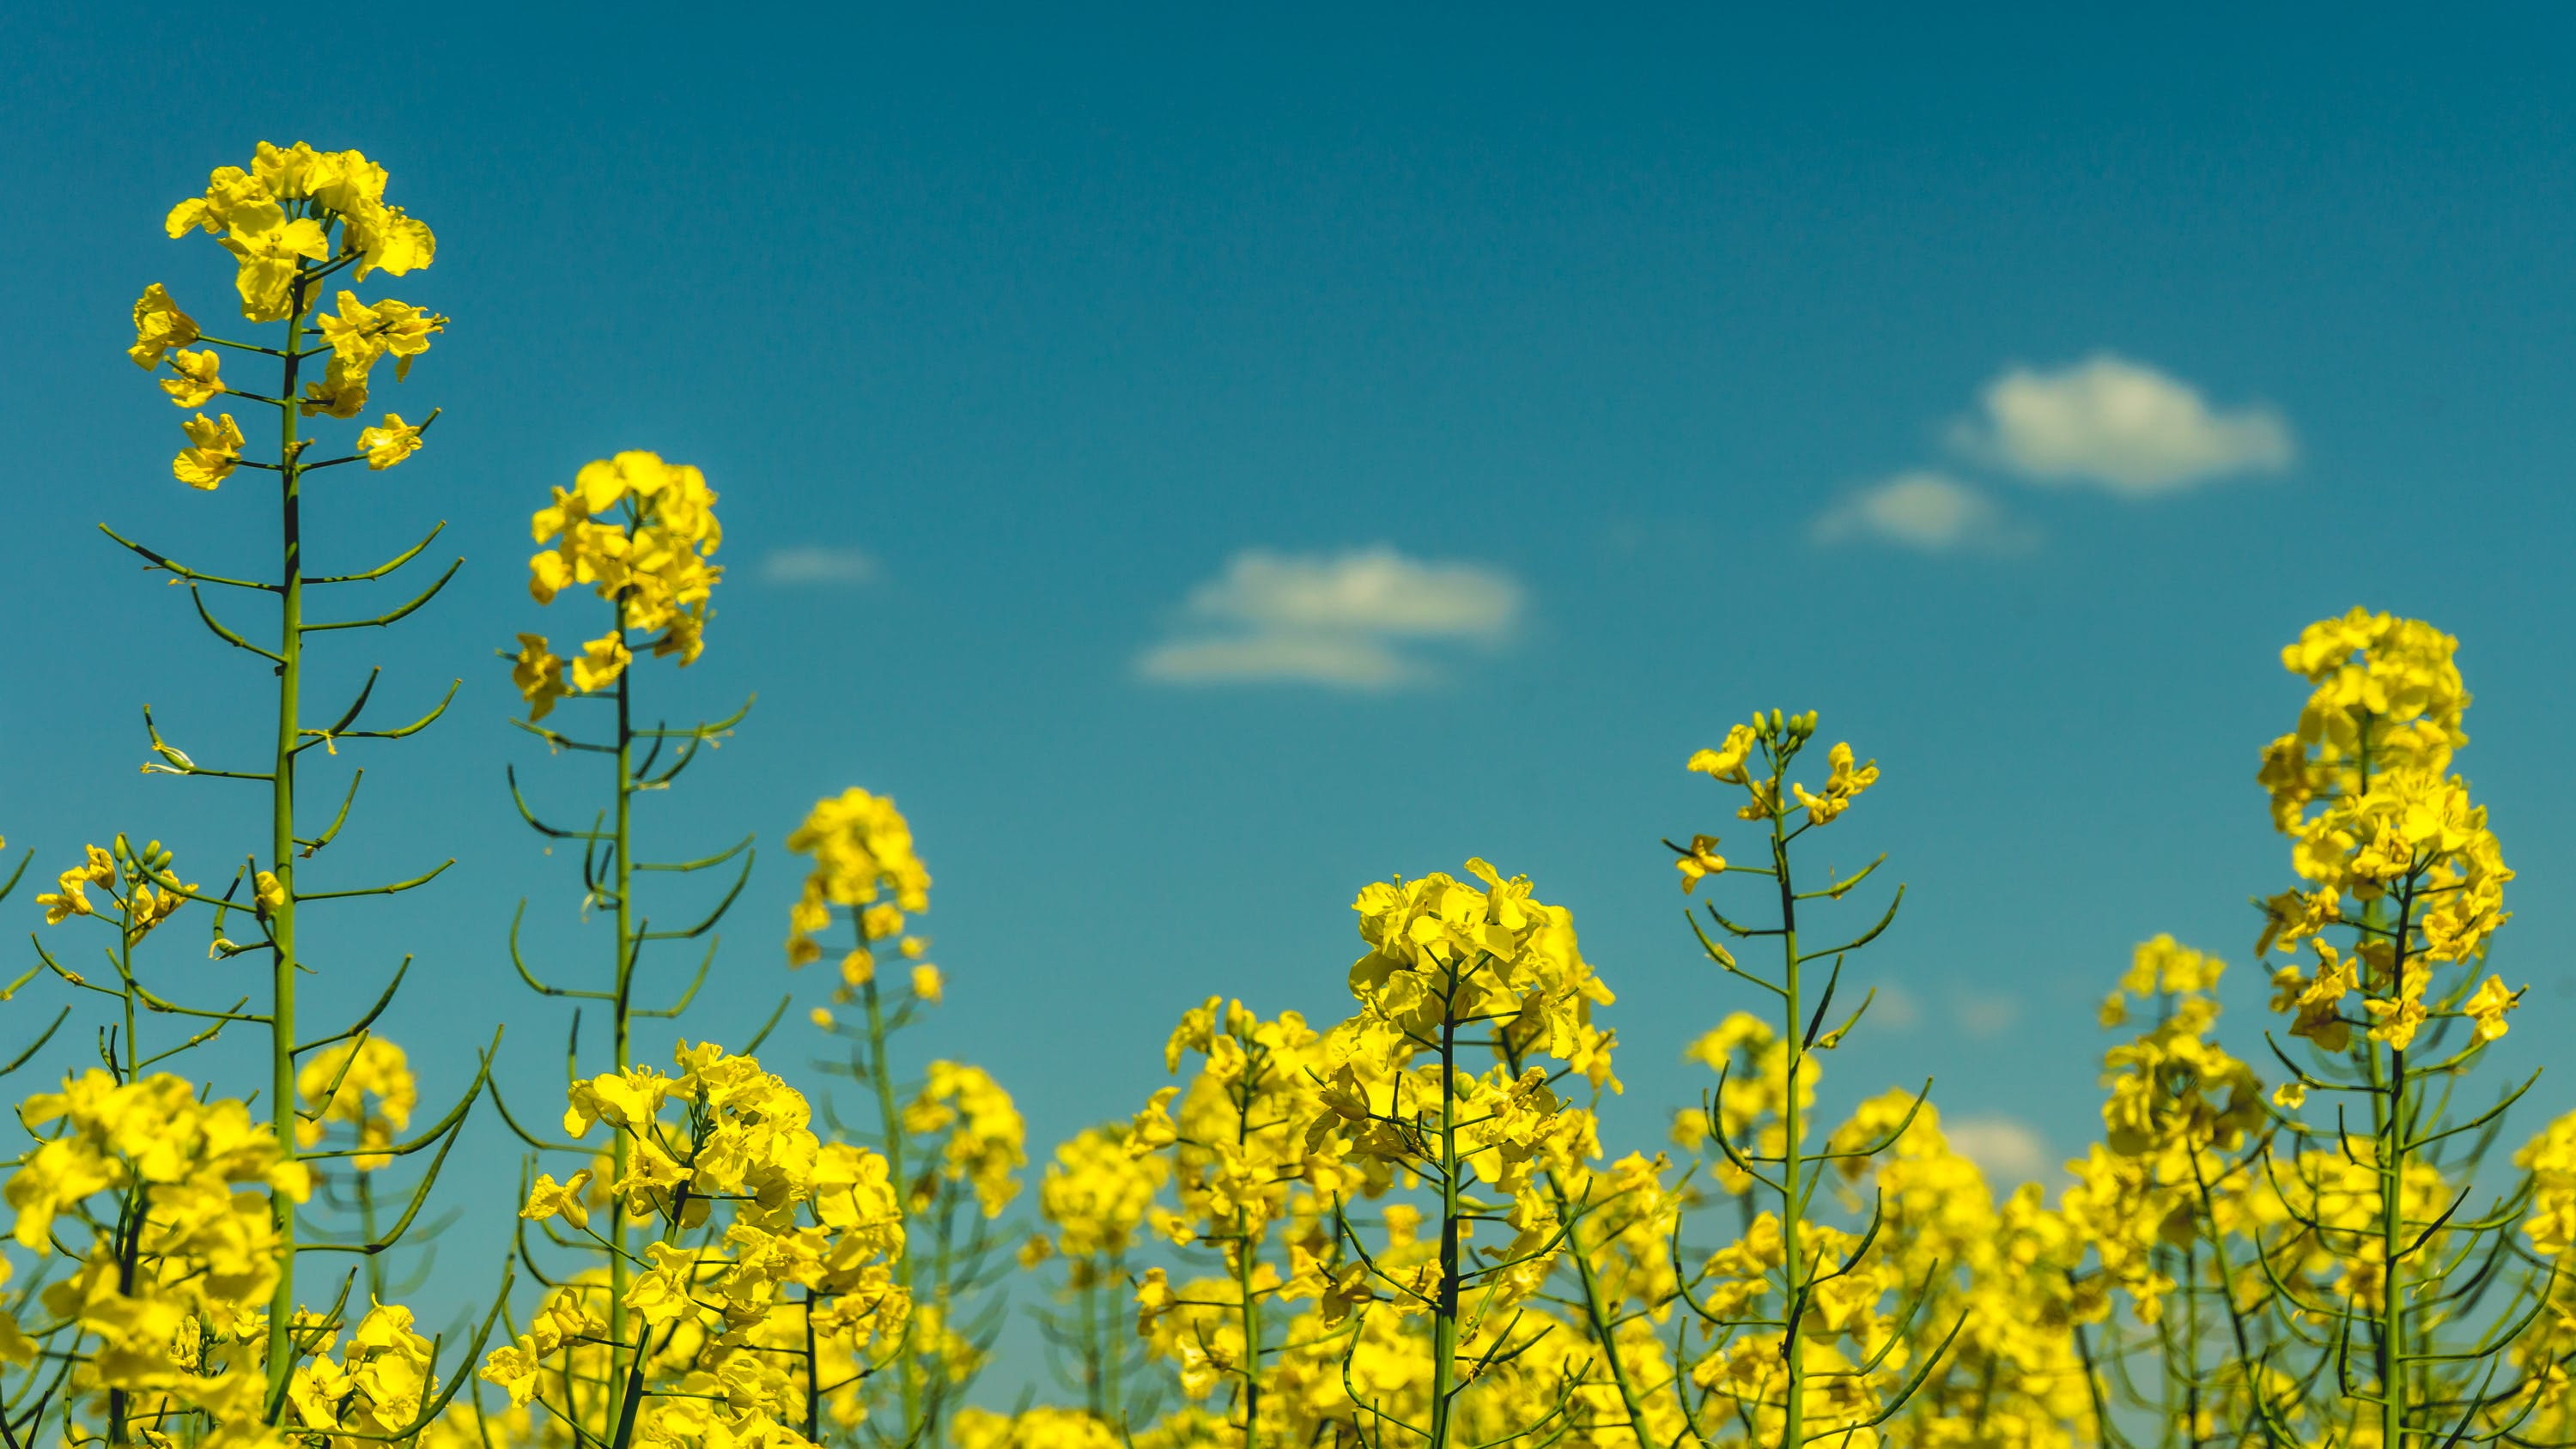 Yellow Flowers Under Partly Cloudy Skies during Daytime